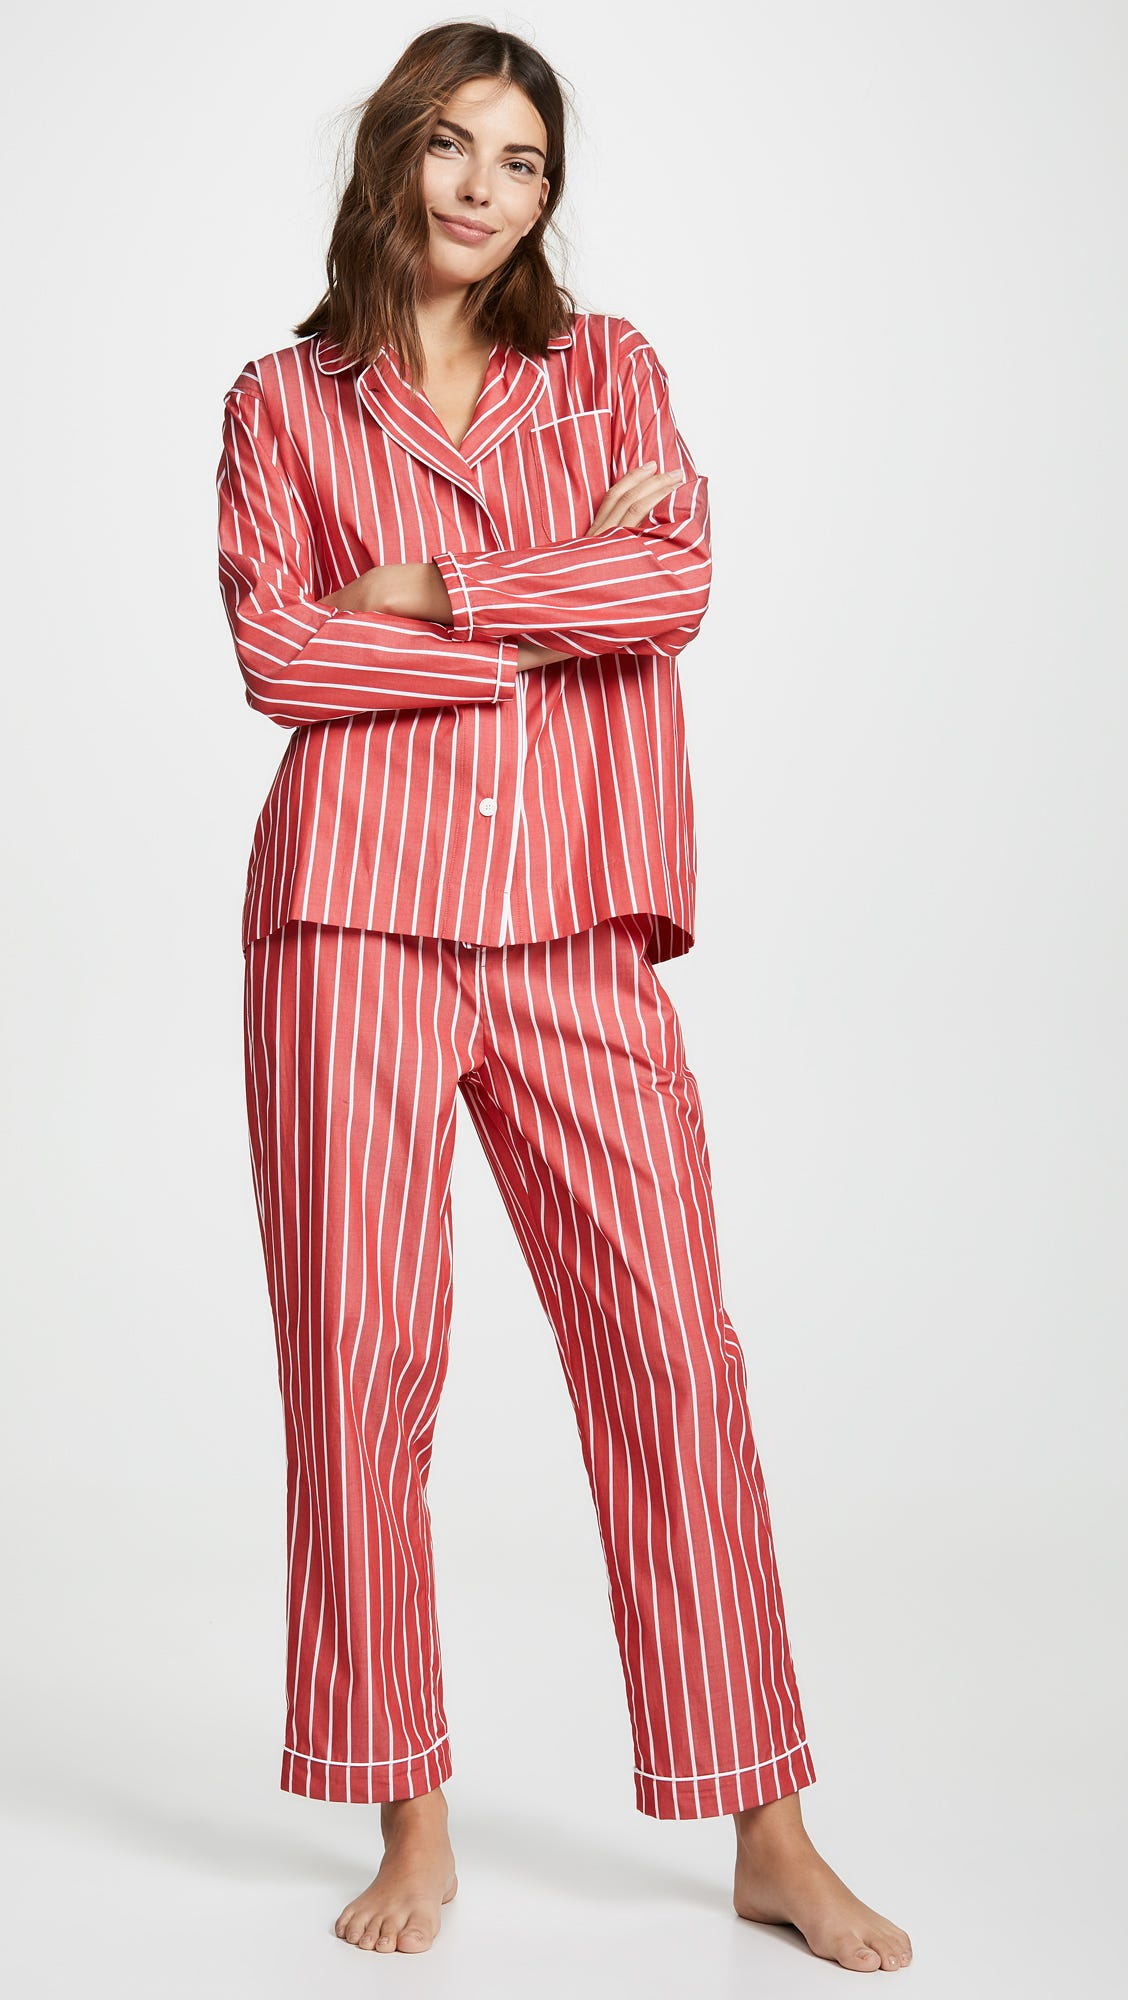 9134704c64d73 Sleepy Jones. Bishop Striped Pajama Set